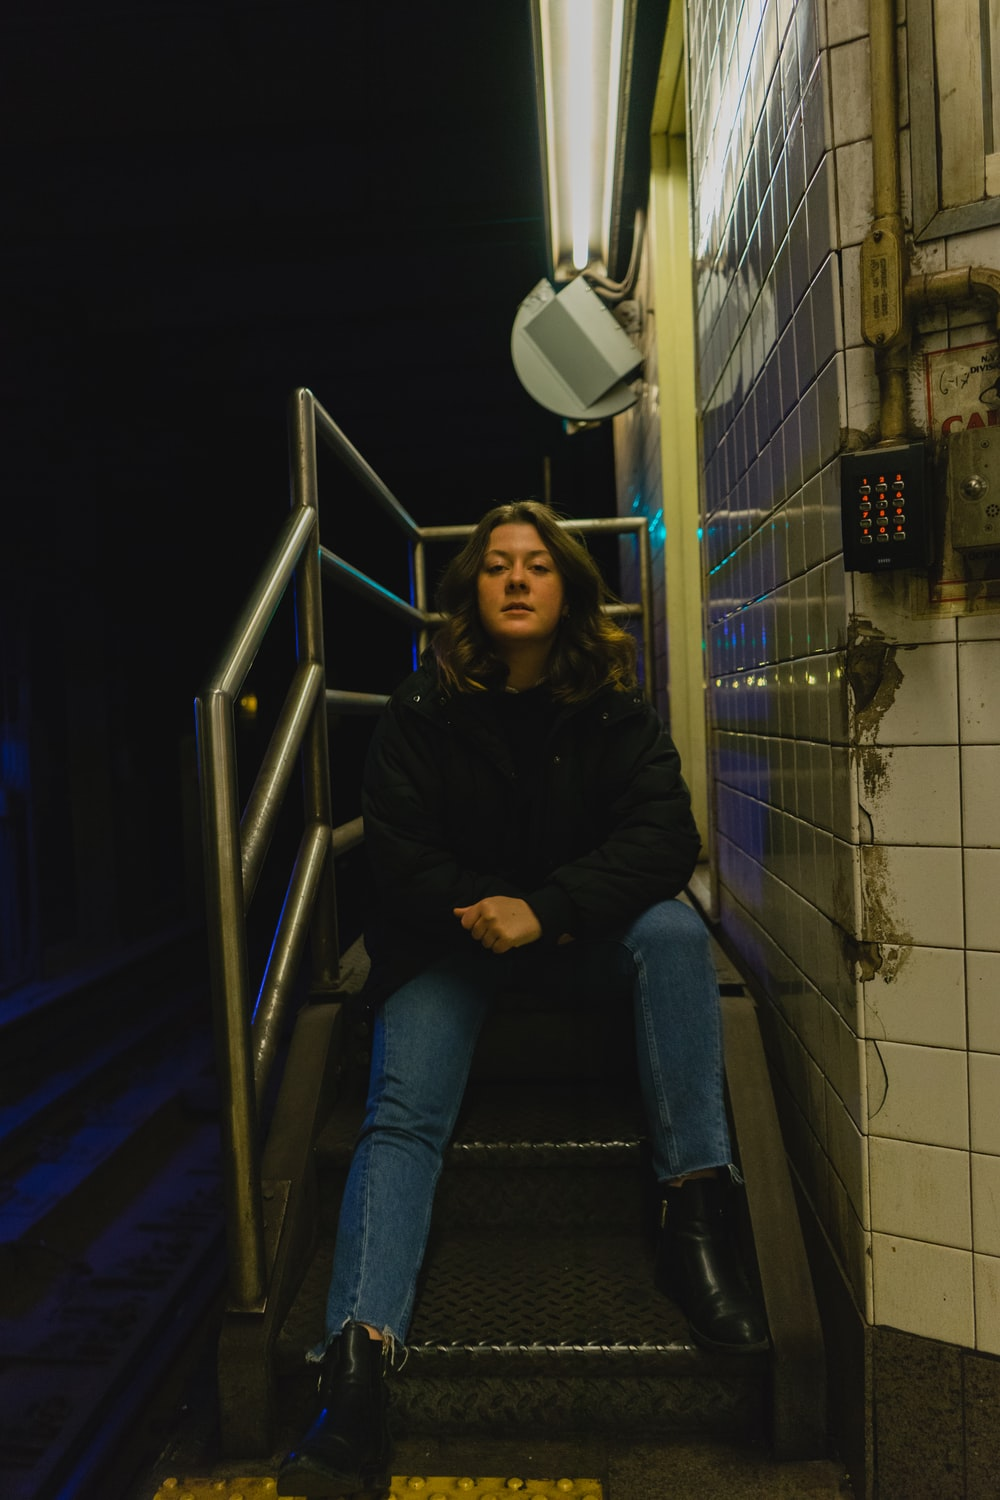 woman sitting stairs